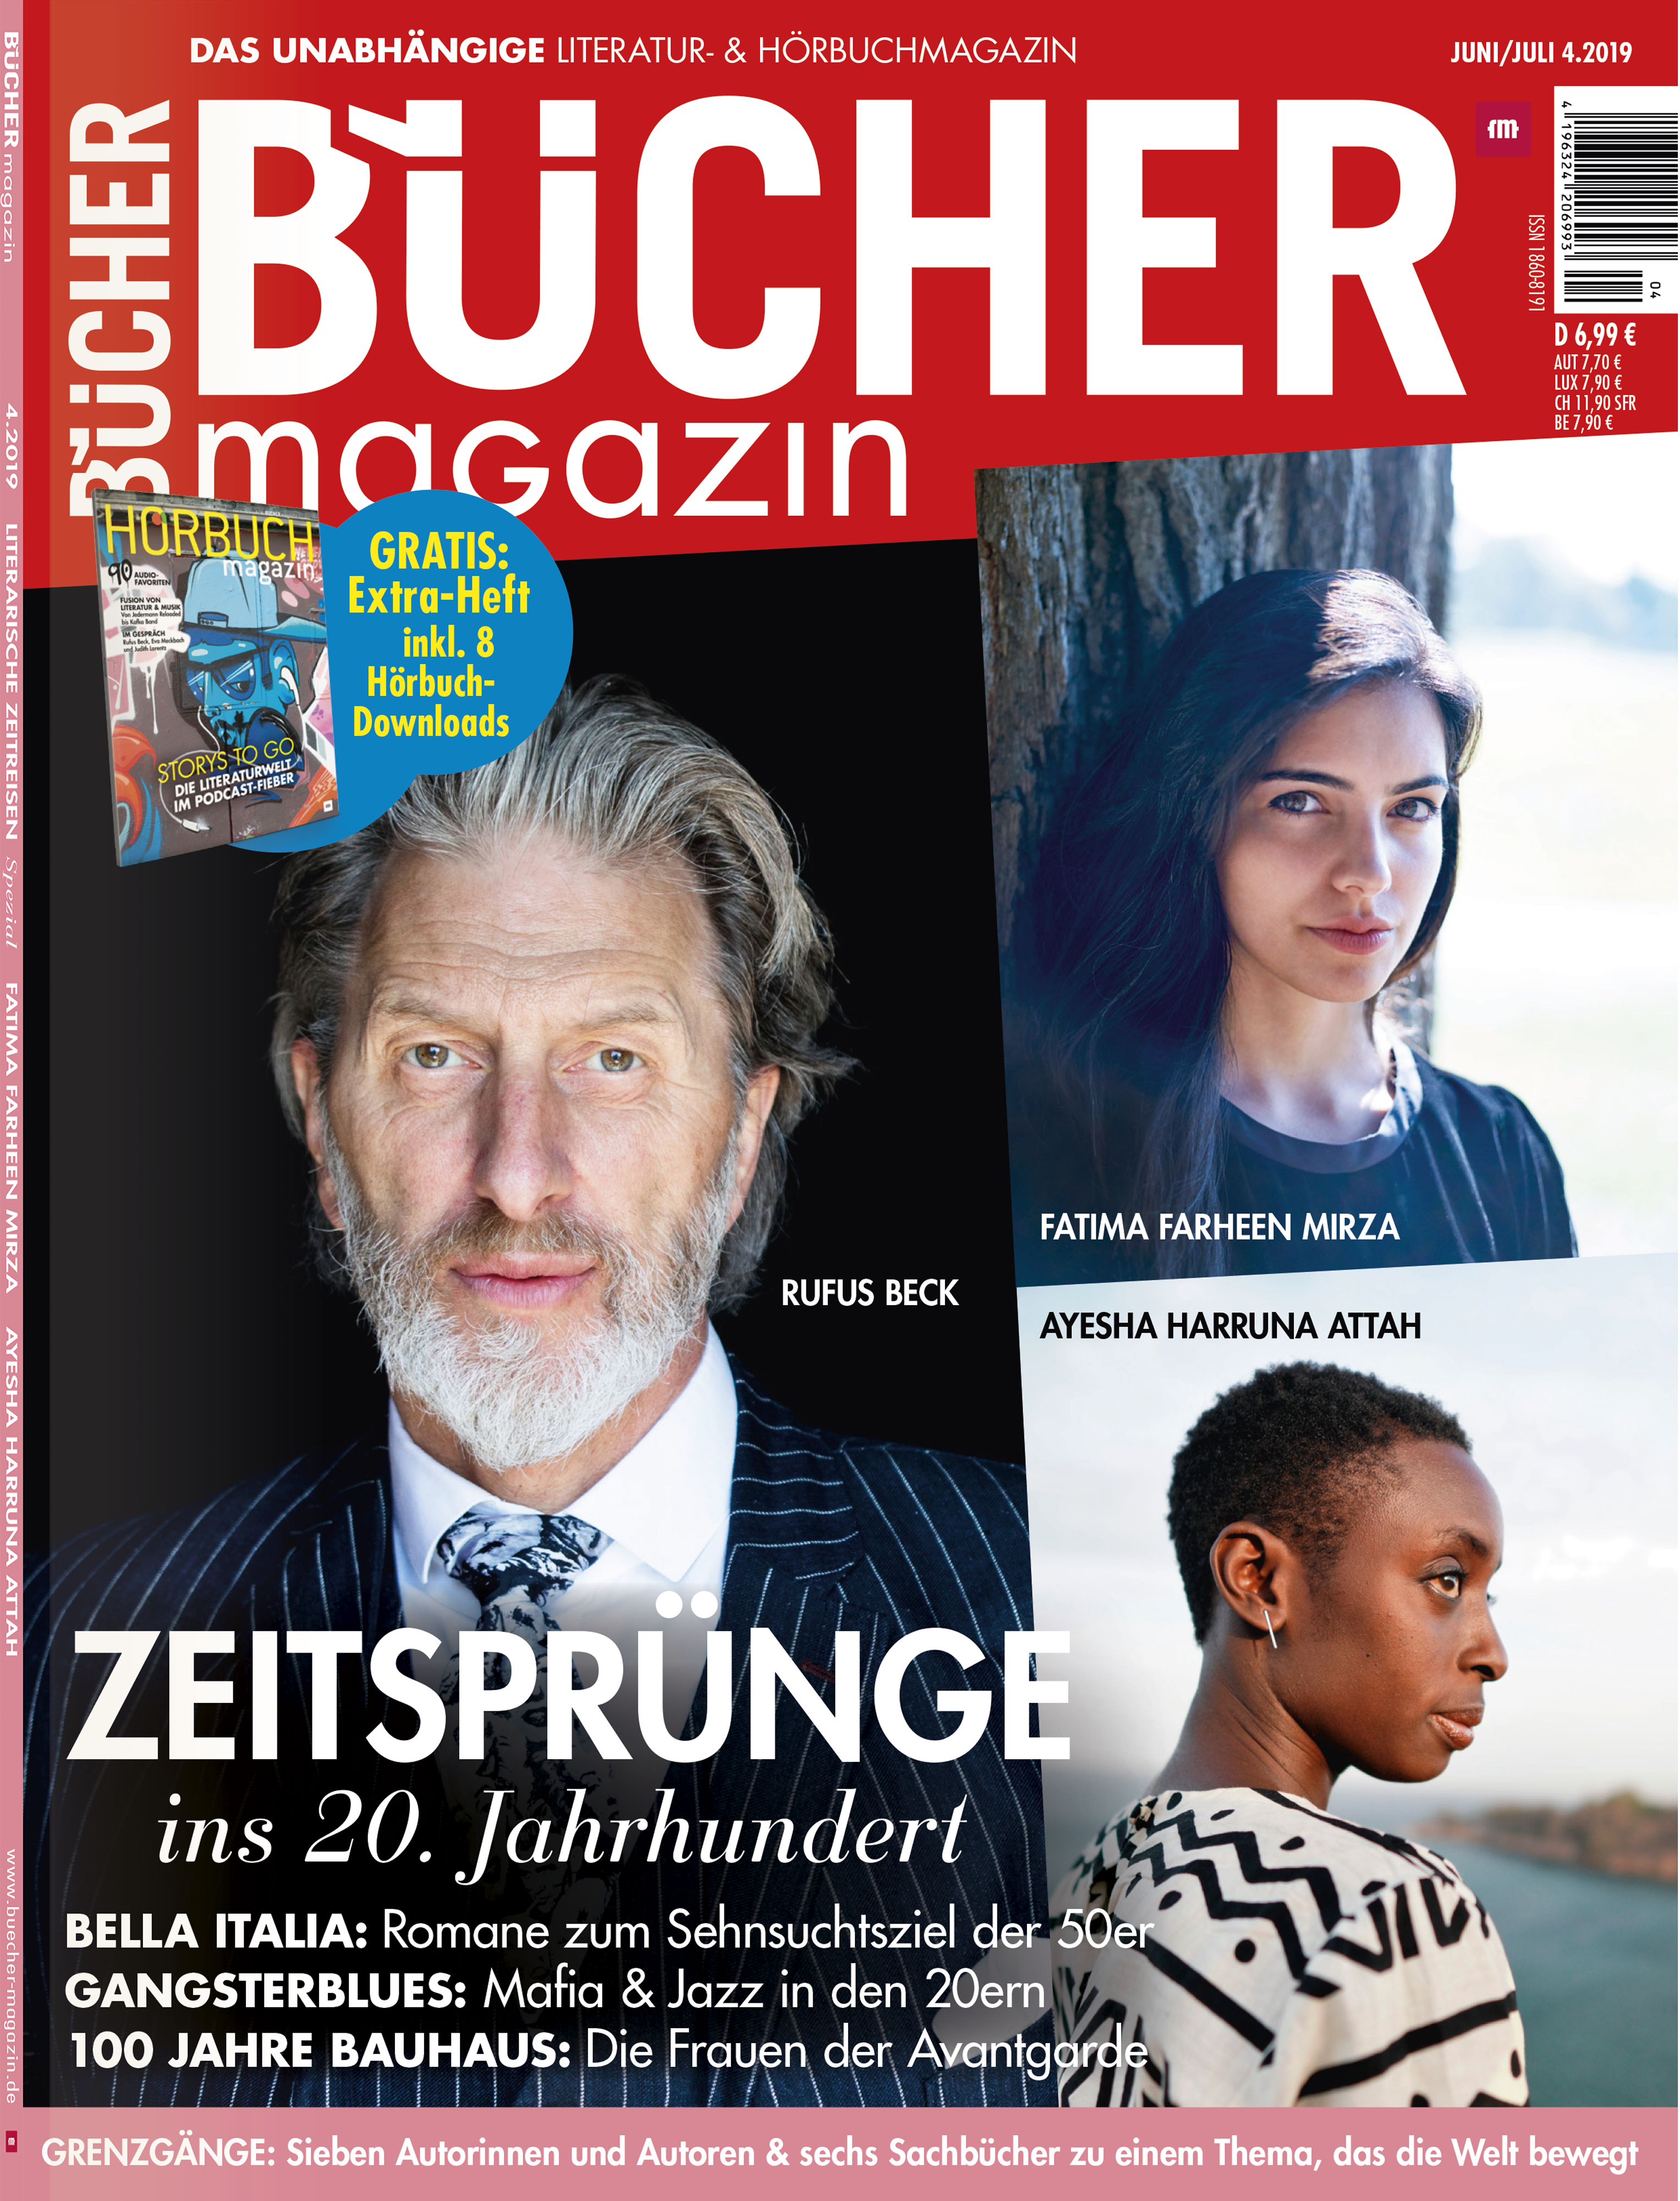 BÜCHER 04/2019